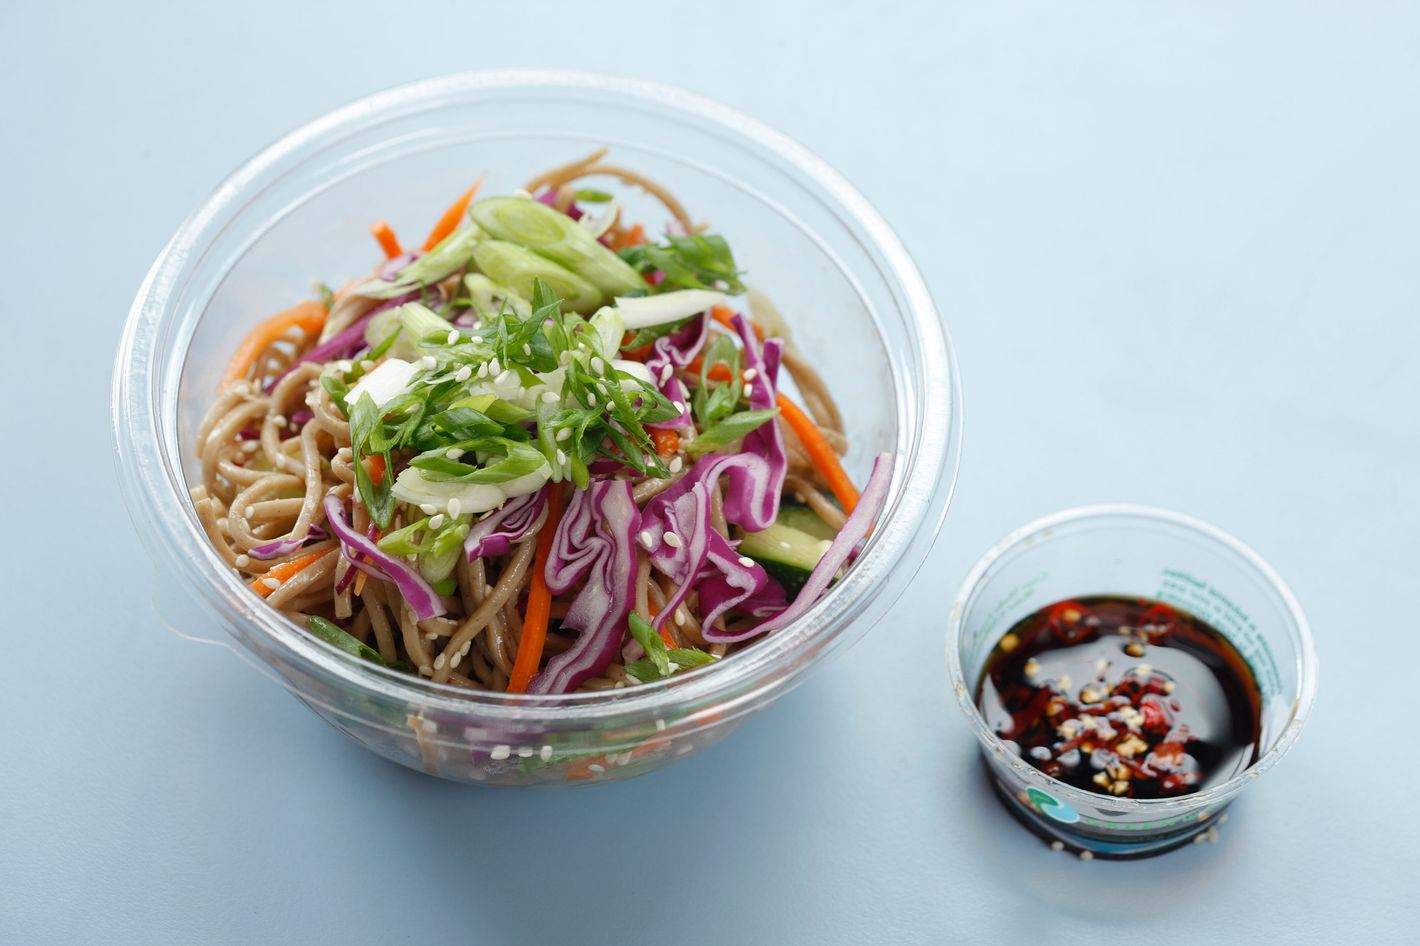 ... red cabbage, carrot, sesame seeds, scallions, and tsuyu sauce. Photo